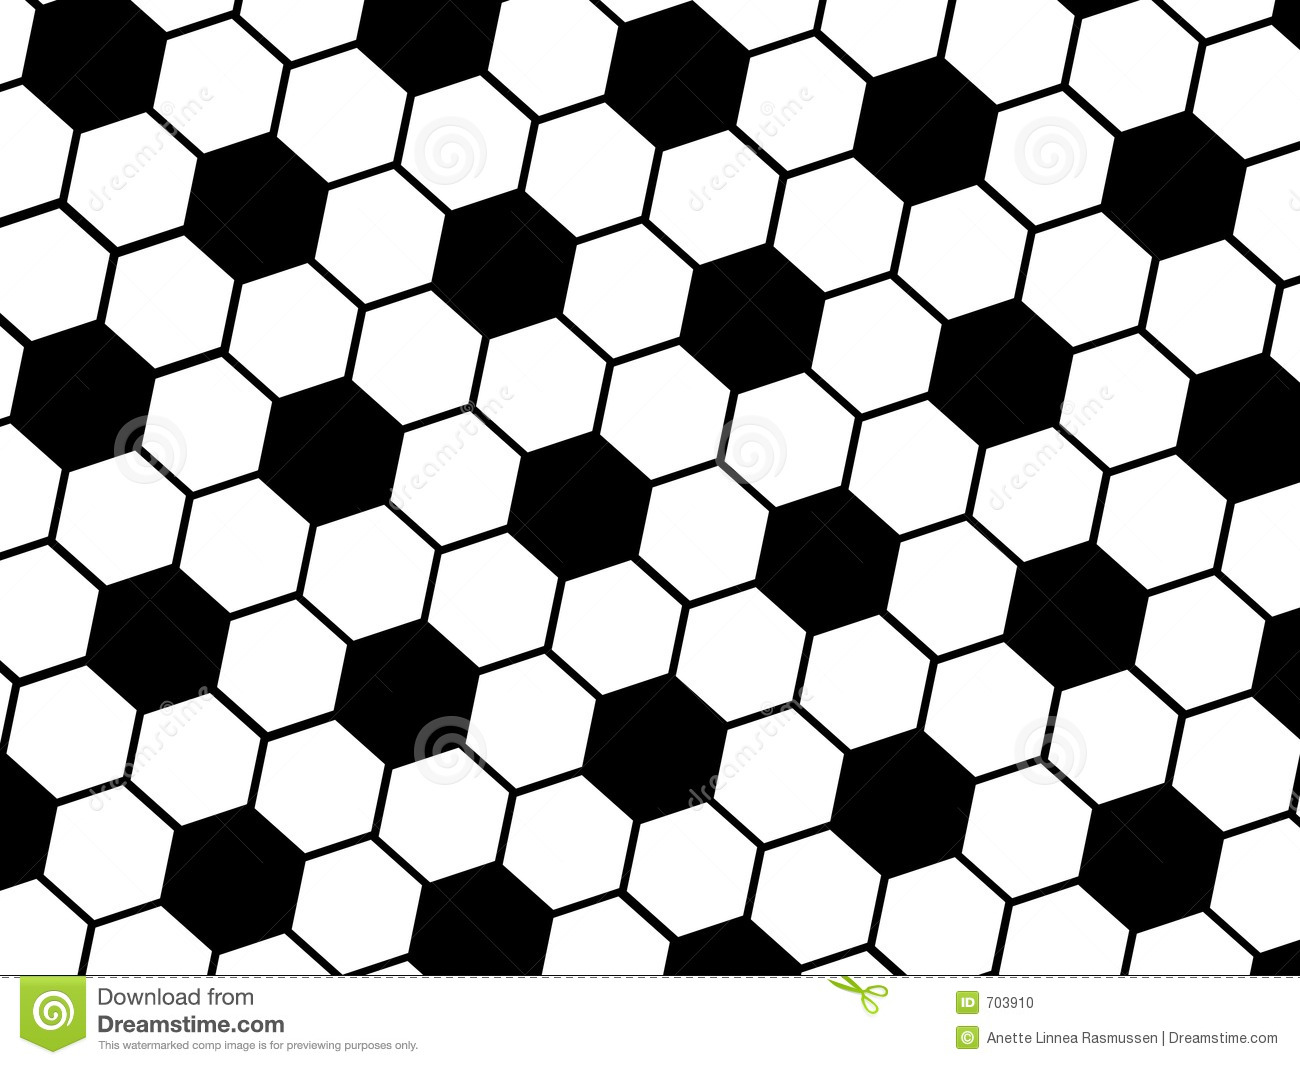 Background of black and white soccer ball pattern.